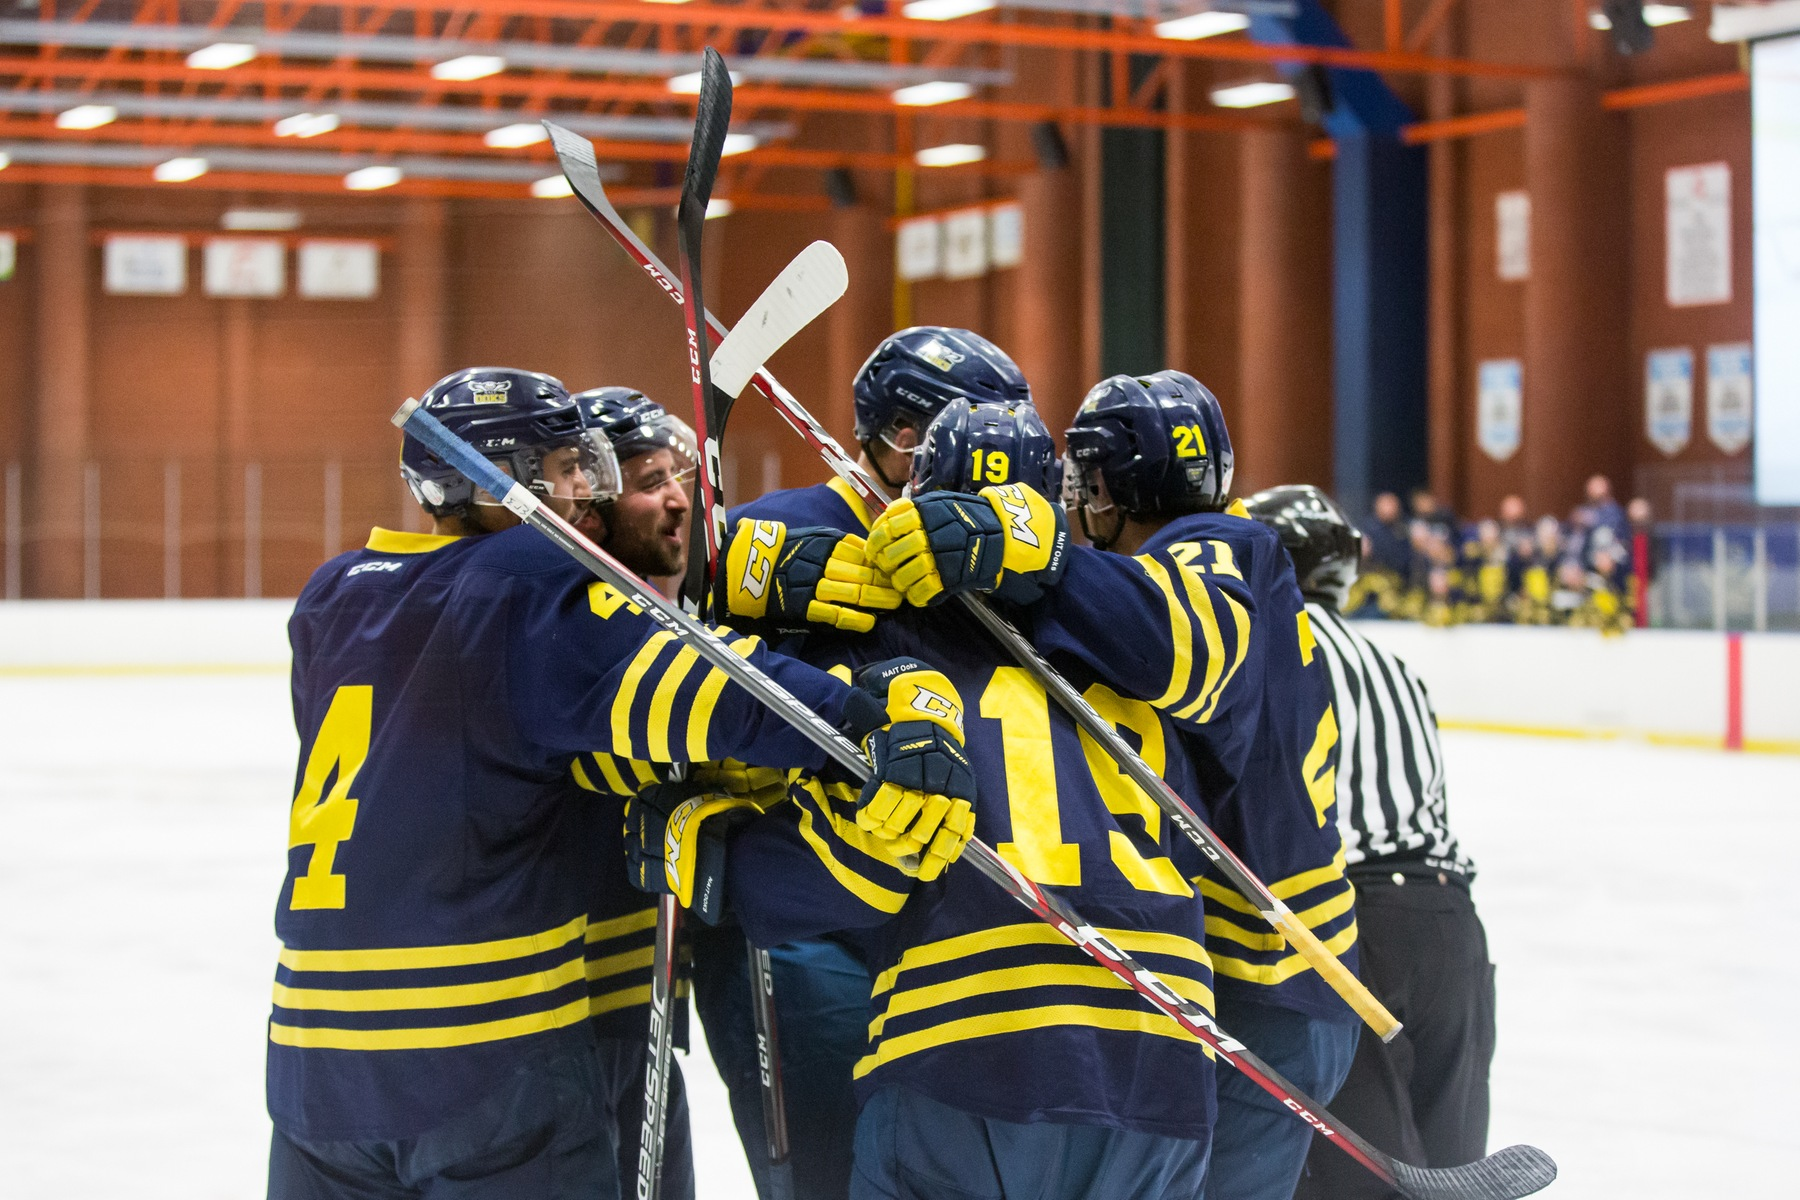 Ooks come from behind to defeat Vikings